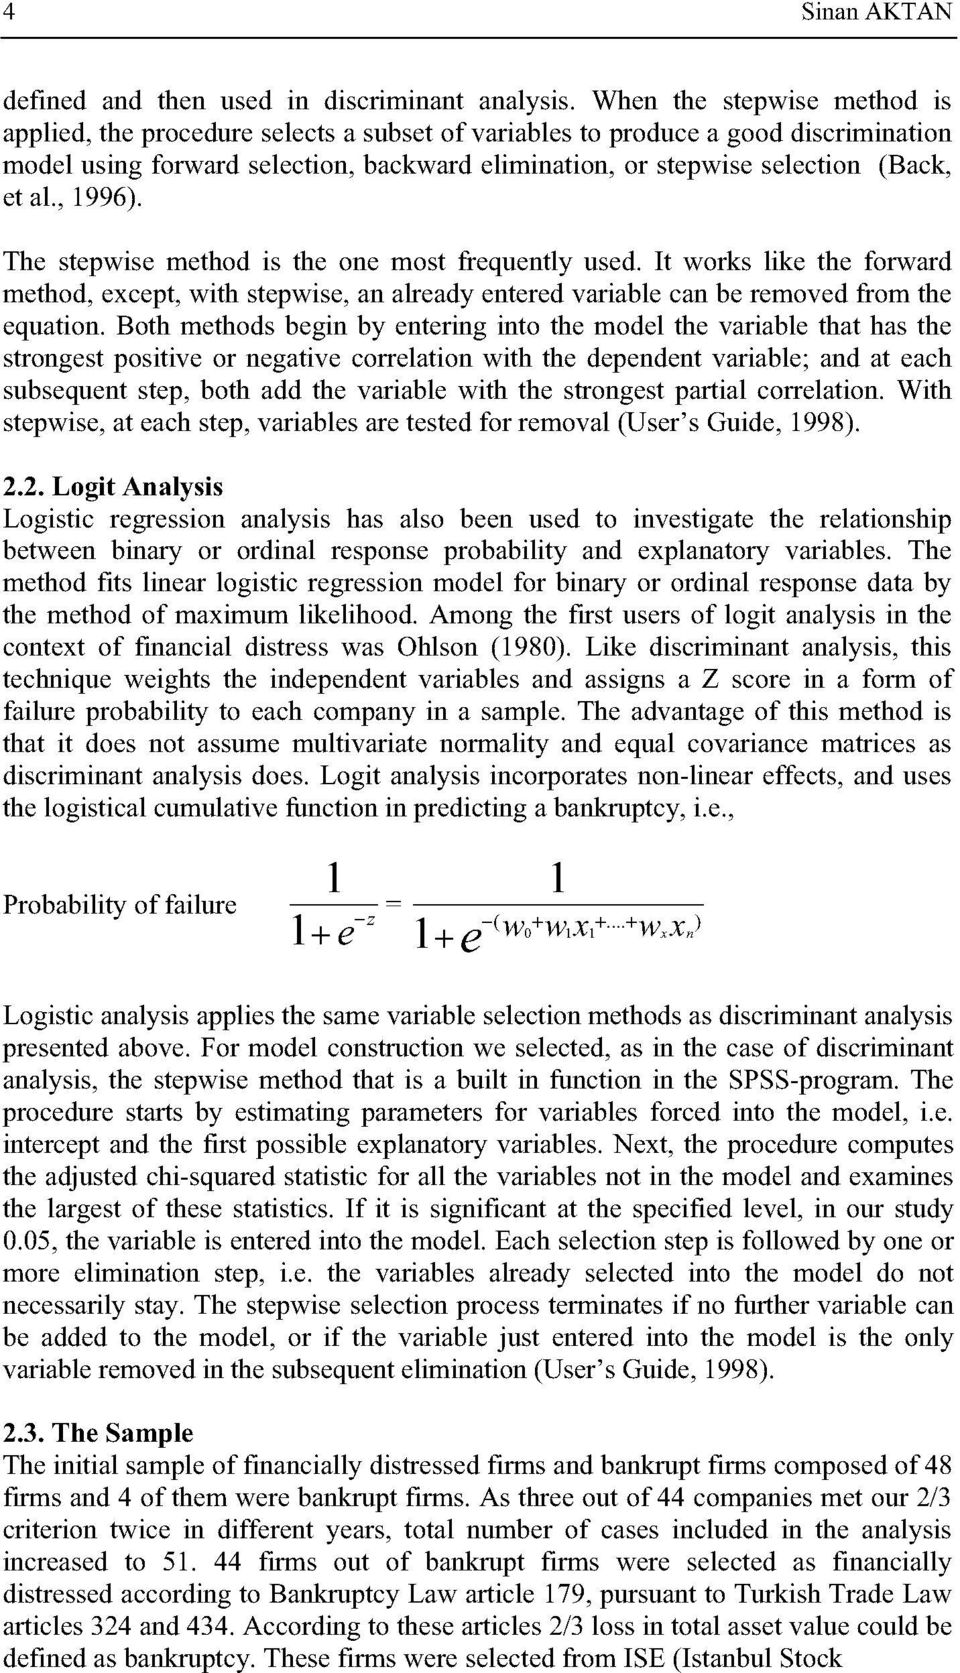 al., 1996). The stepwise method is the one most frequently used. it works like the fonvard method, except, with stepwise, an already entered variable can be removed from the equation.